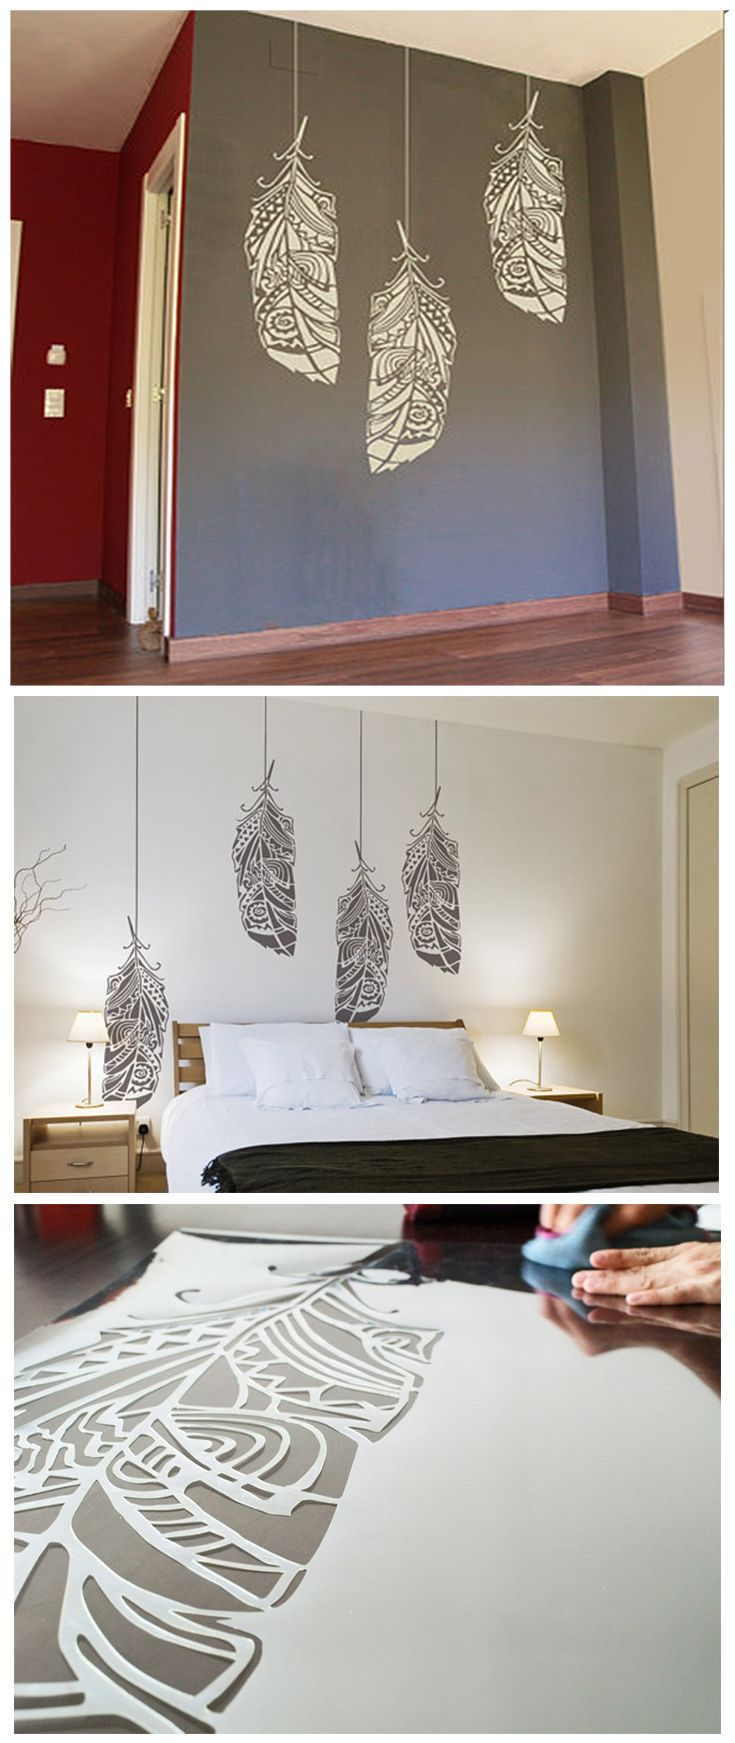 Feather Stencil Ethnic Decor Element For Wall Furniture Or Textile Painting Ideas